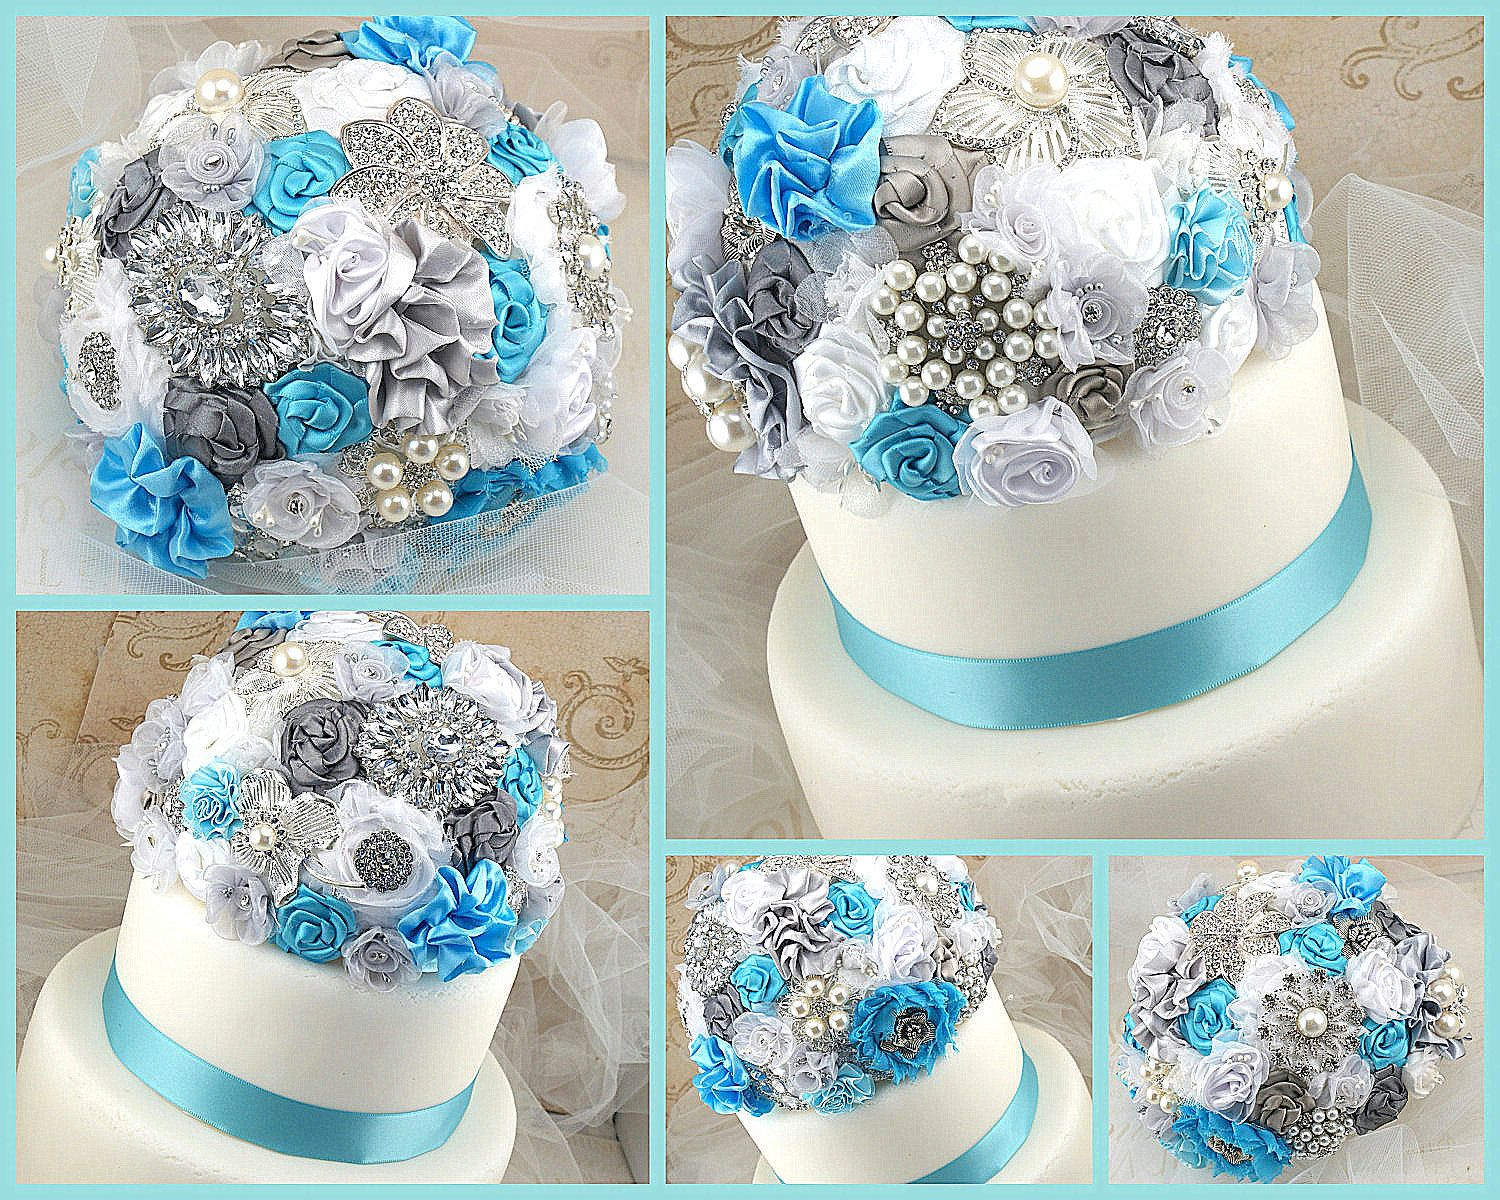 Wedding Cake Topper Brooch Jeweled In Turquoise White And Silver With Brooches